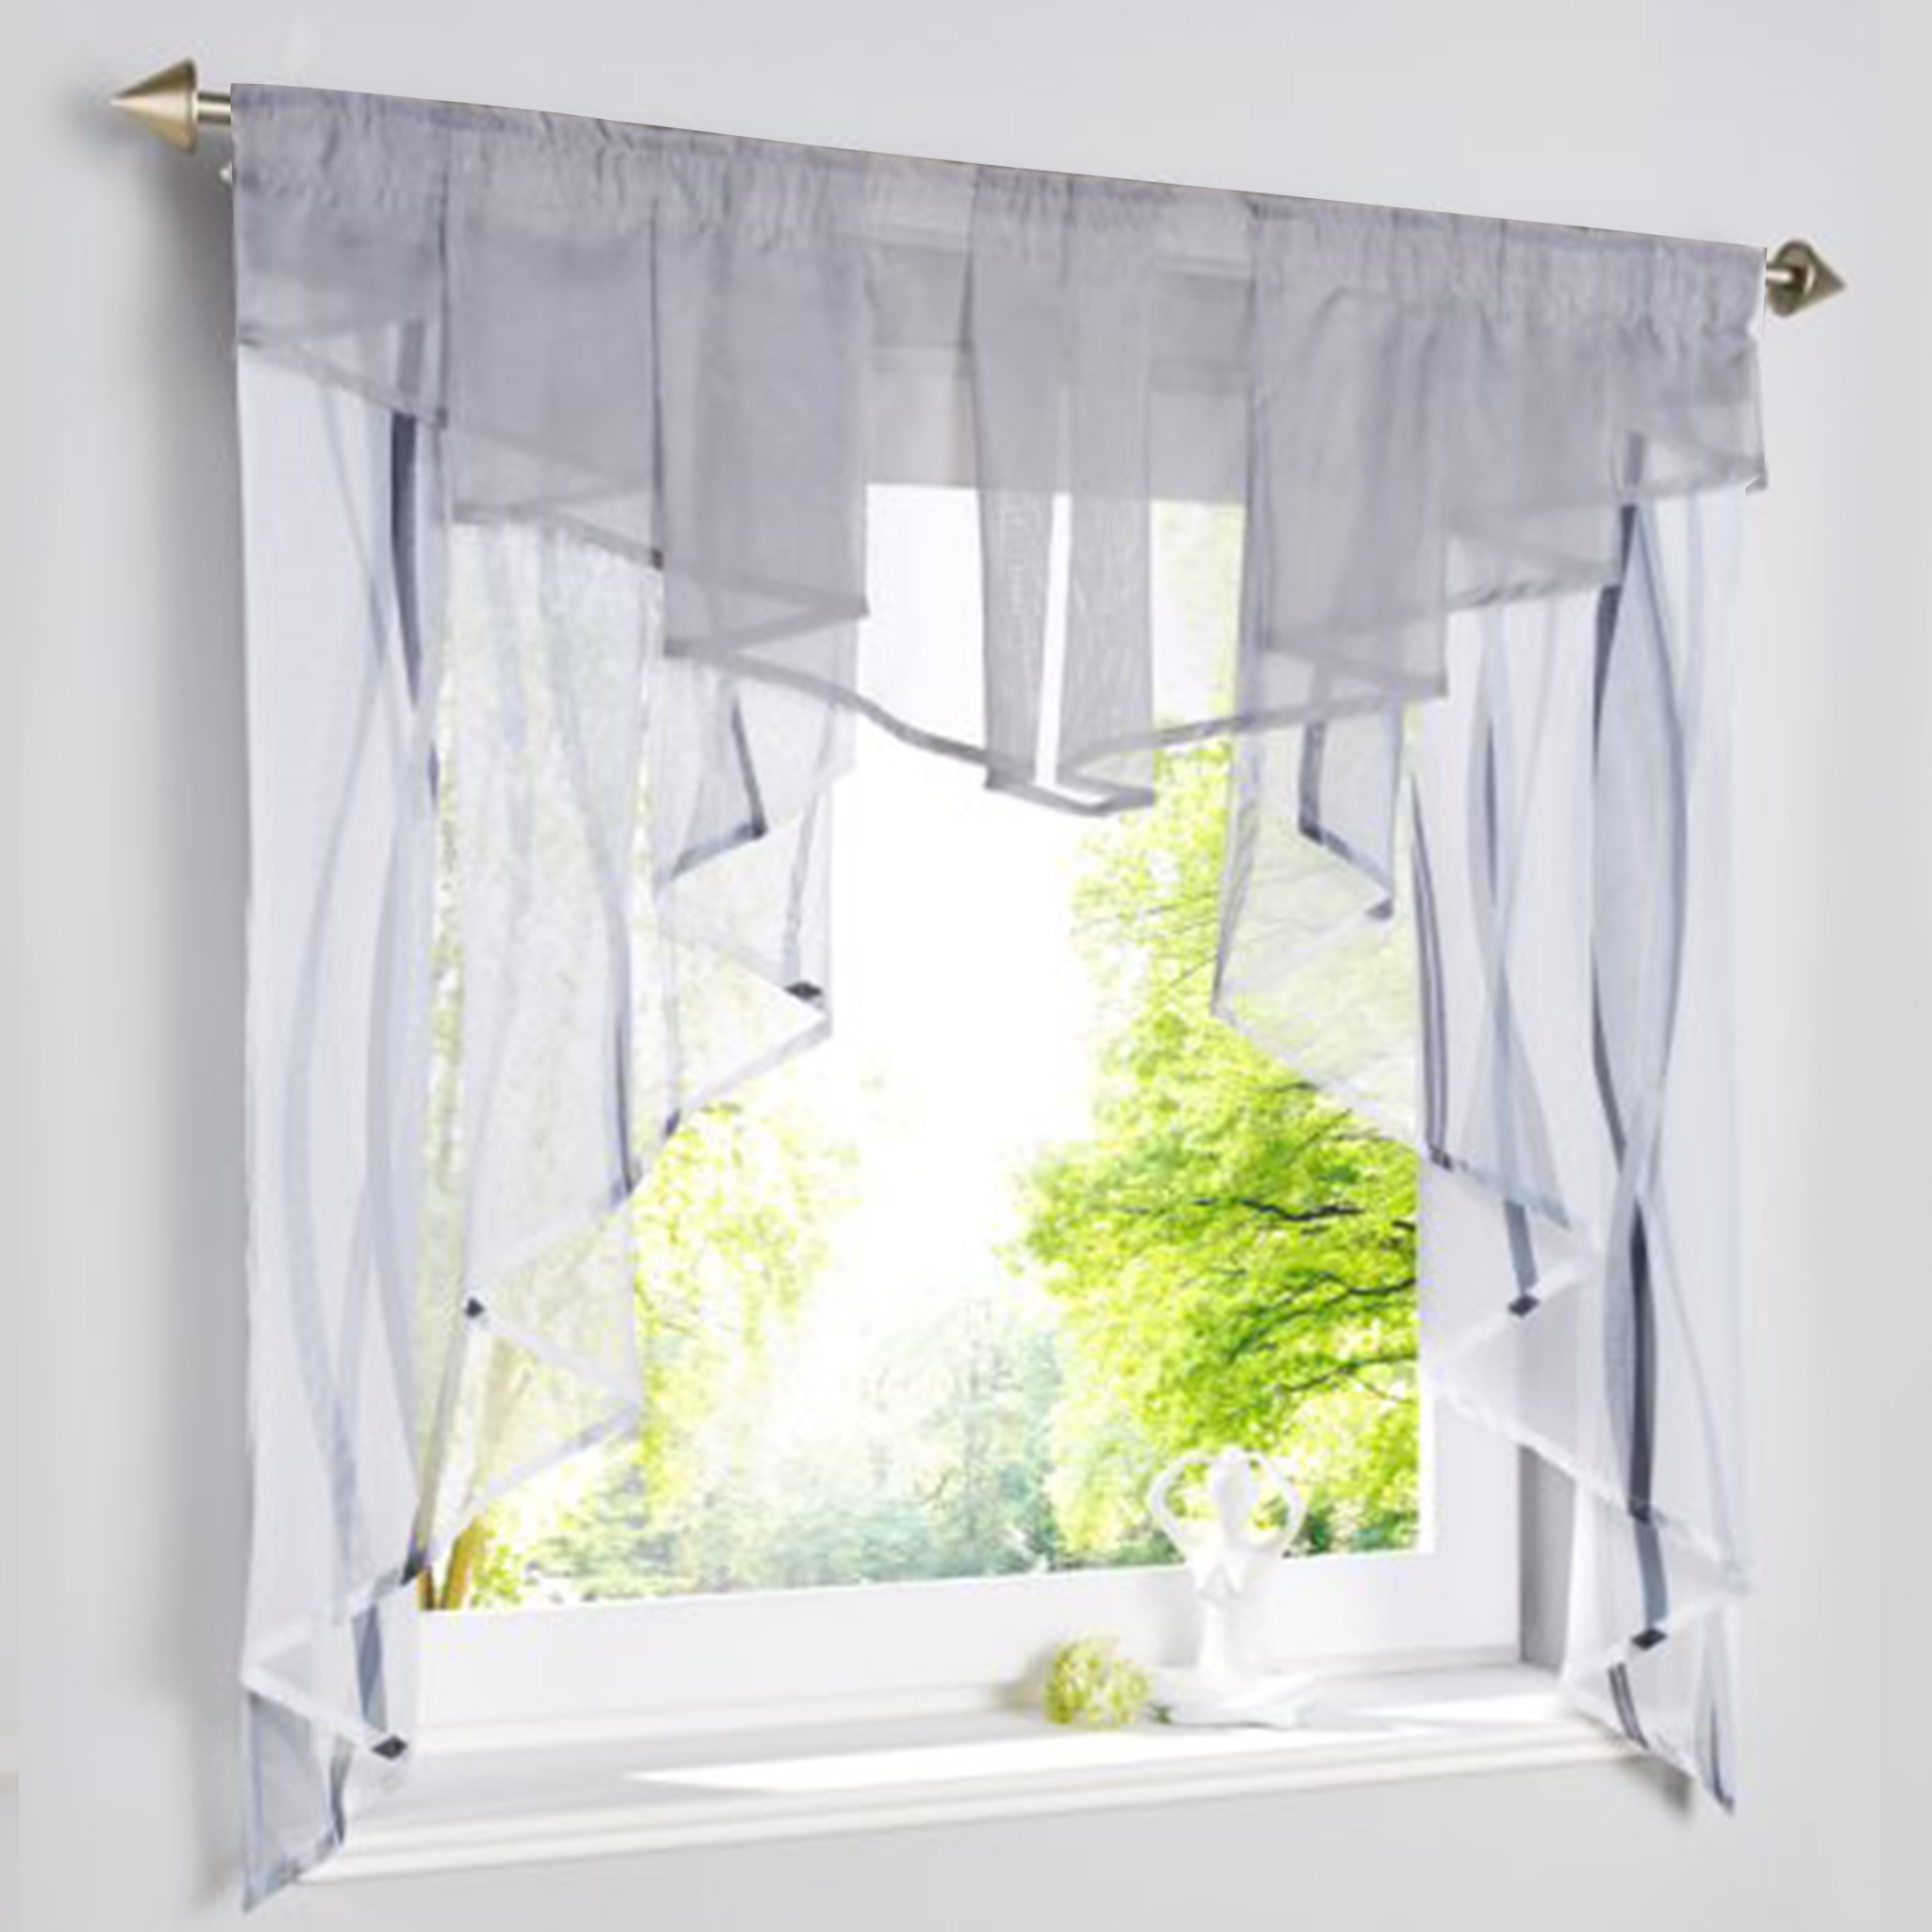 treatments well white pin go with drapes the so window sheer gold beautiful curtains along curtain